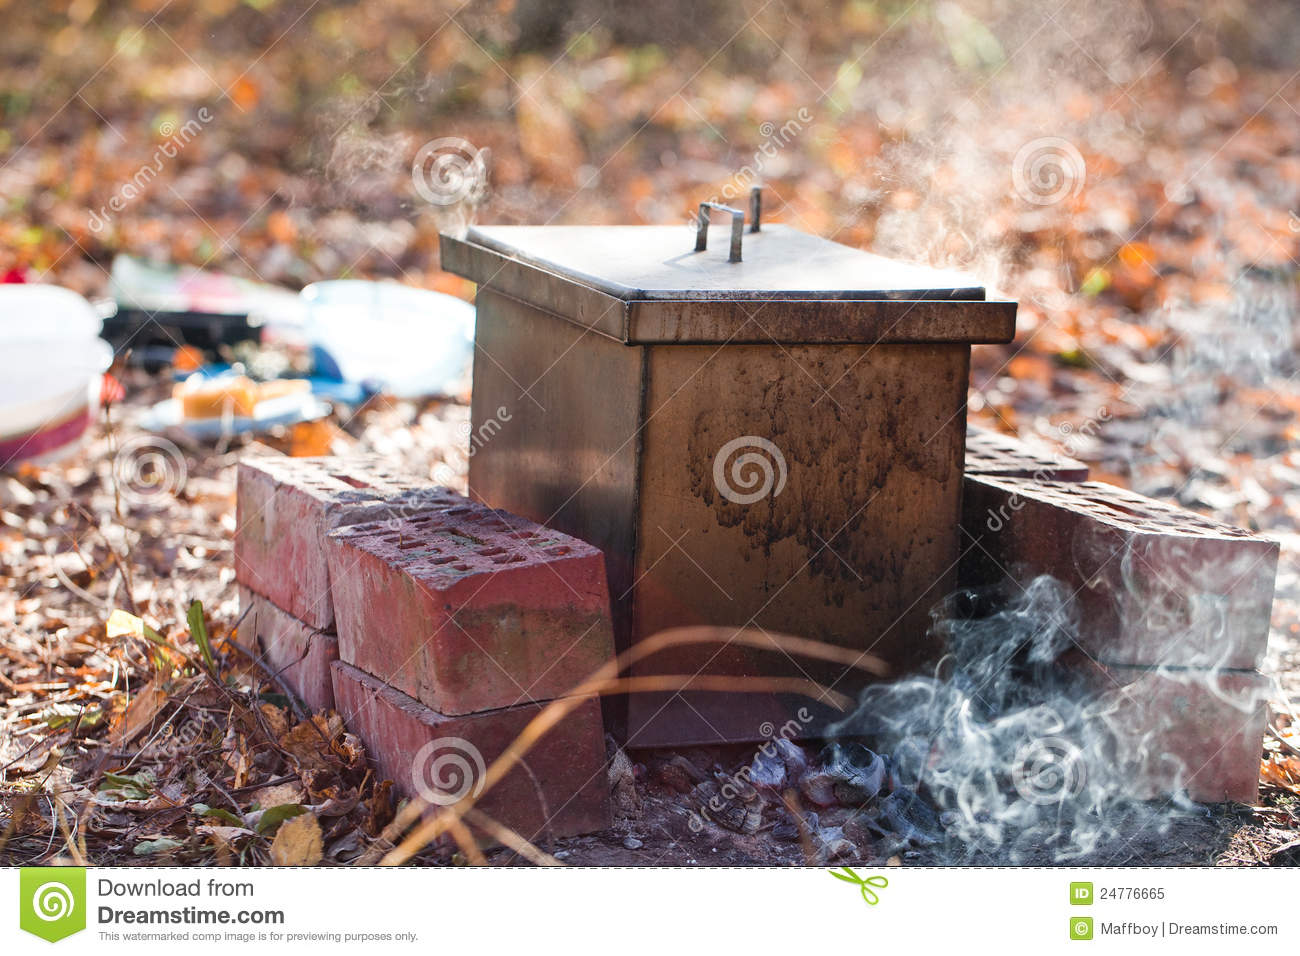 Homemade Smokehouse Royalty Free Stock Photo - Image: 24776665